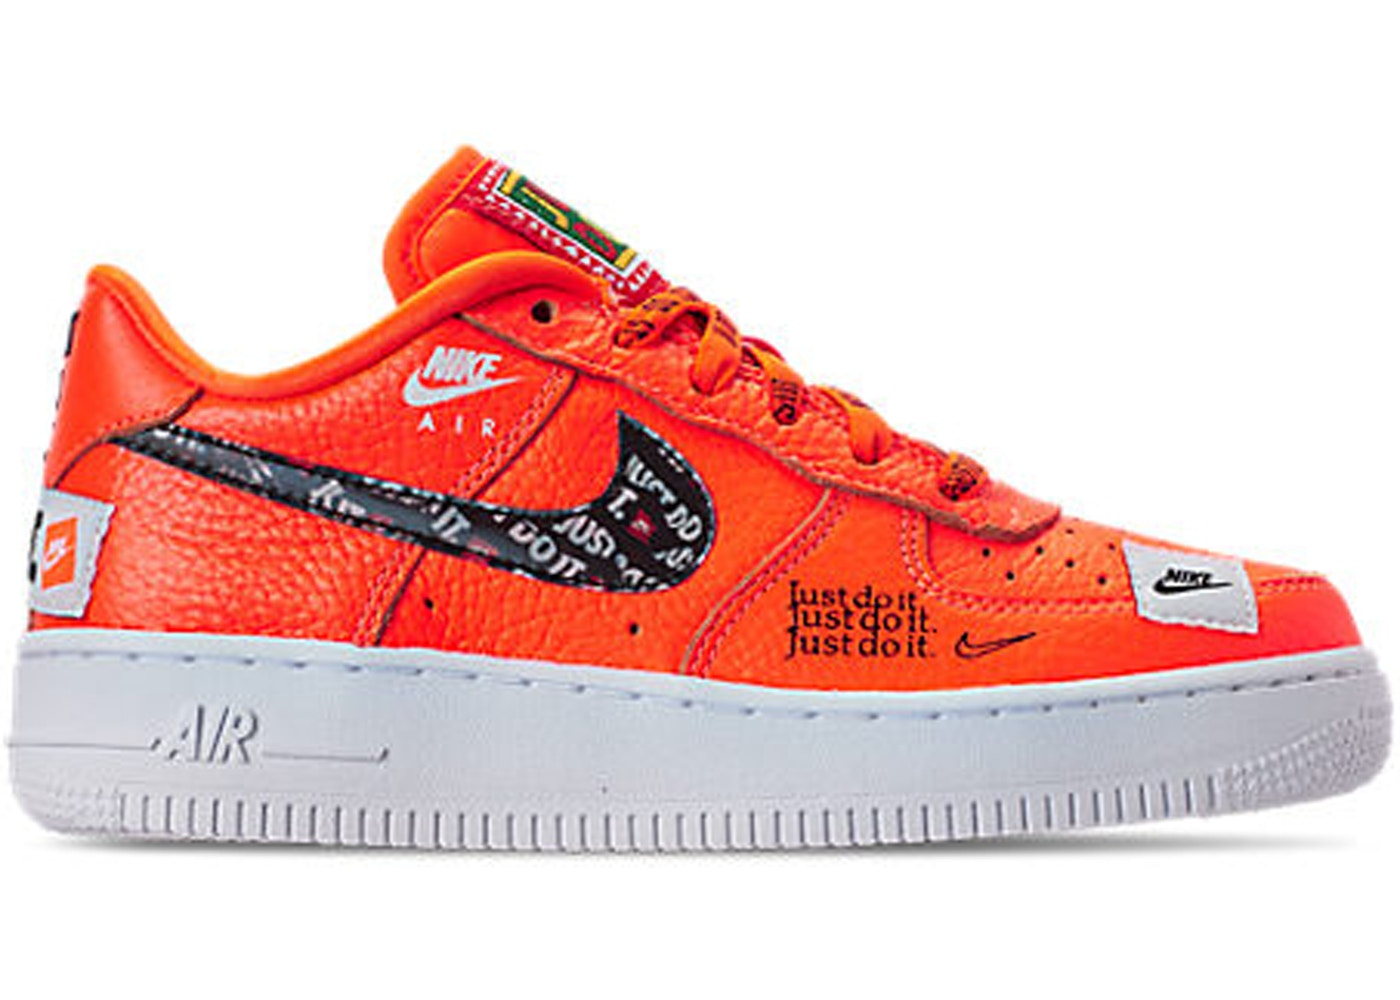 898179849b Air Force 1 Low Just Do It Pack Orange (GS) - AO3977-800